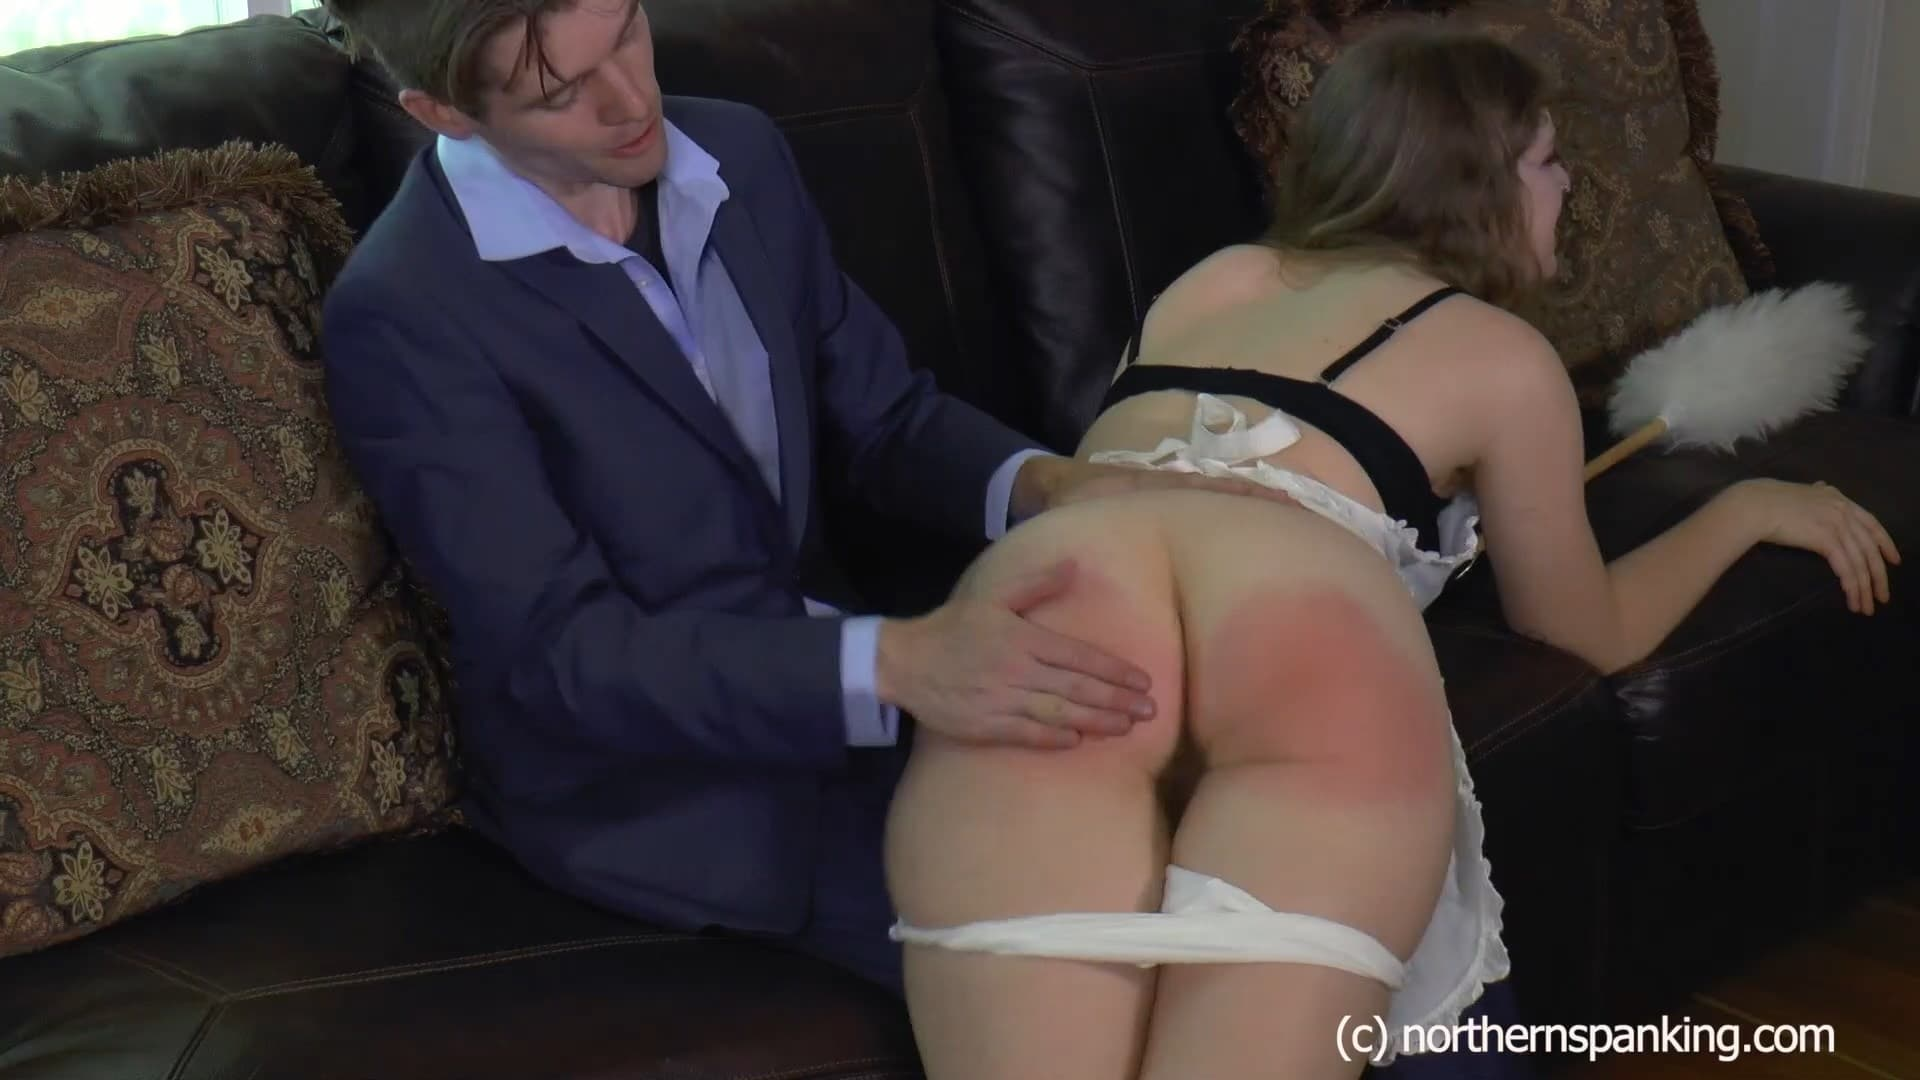 Northern Spanking – MP4/Full HD – Apricot Pitts, Ulf Sayer – Attracting Attention